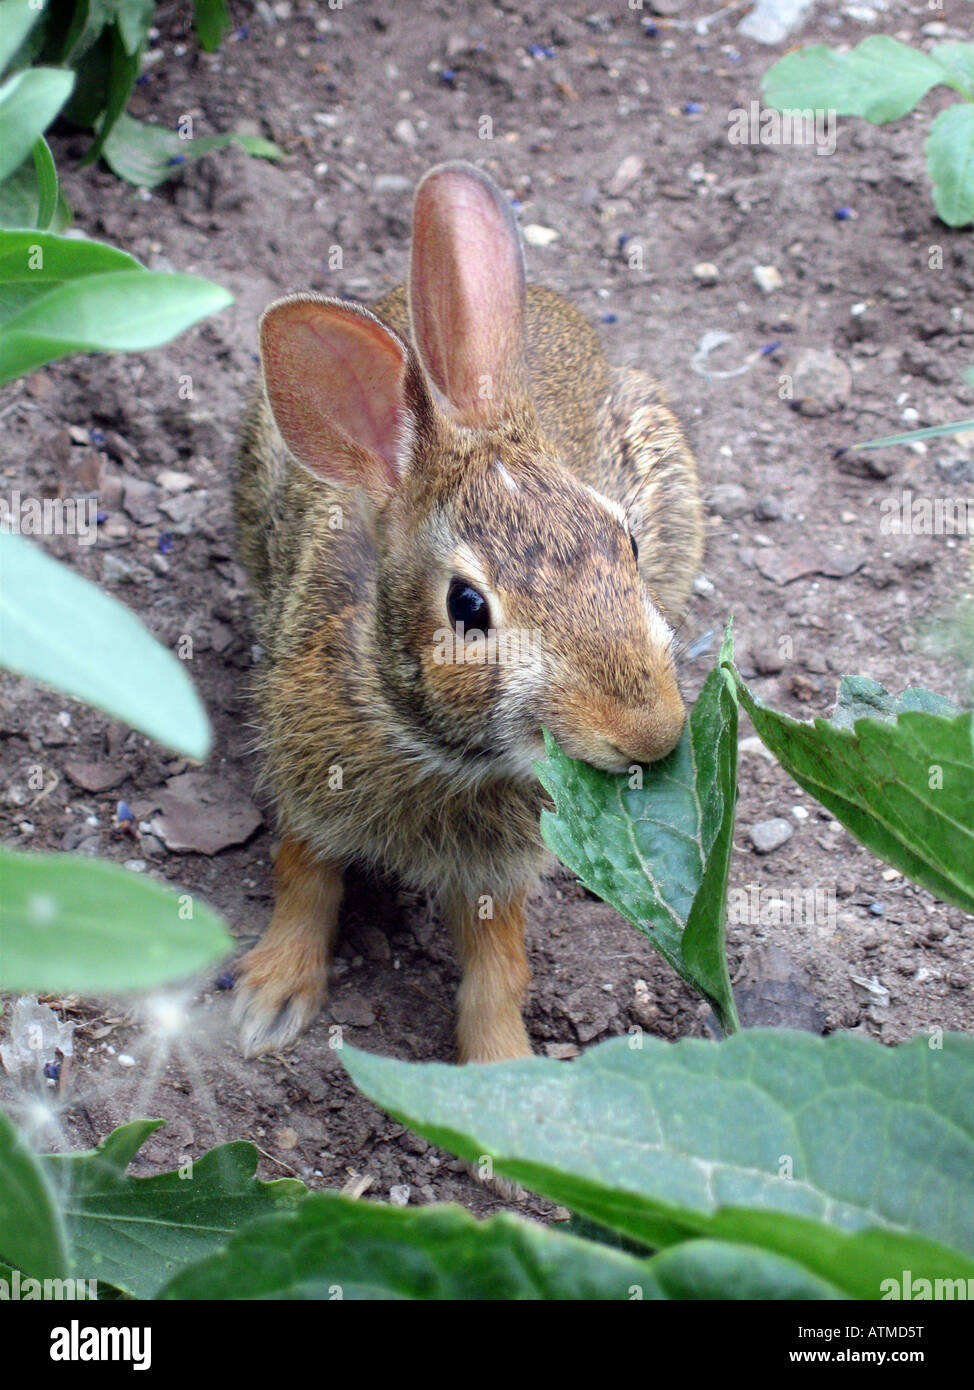 A wild rabbit chews on a plant in an urban allotment vegetable gardenf Stock Photo